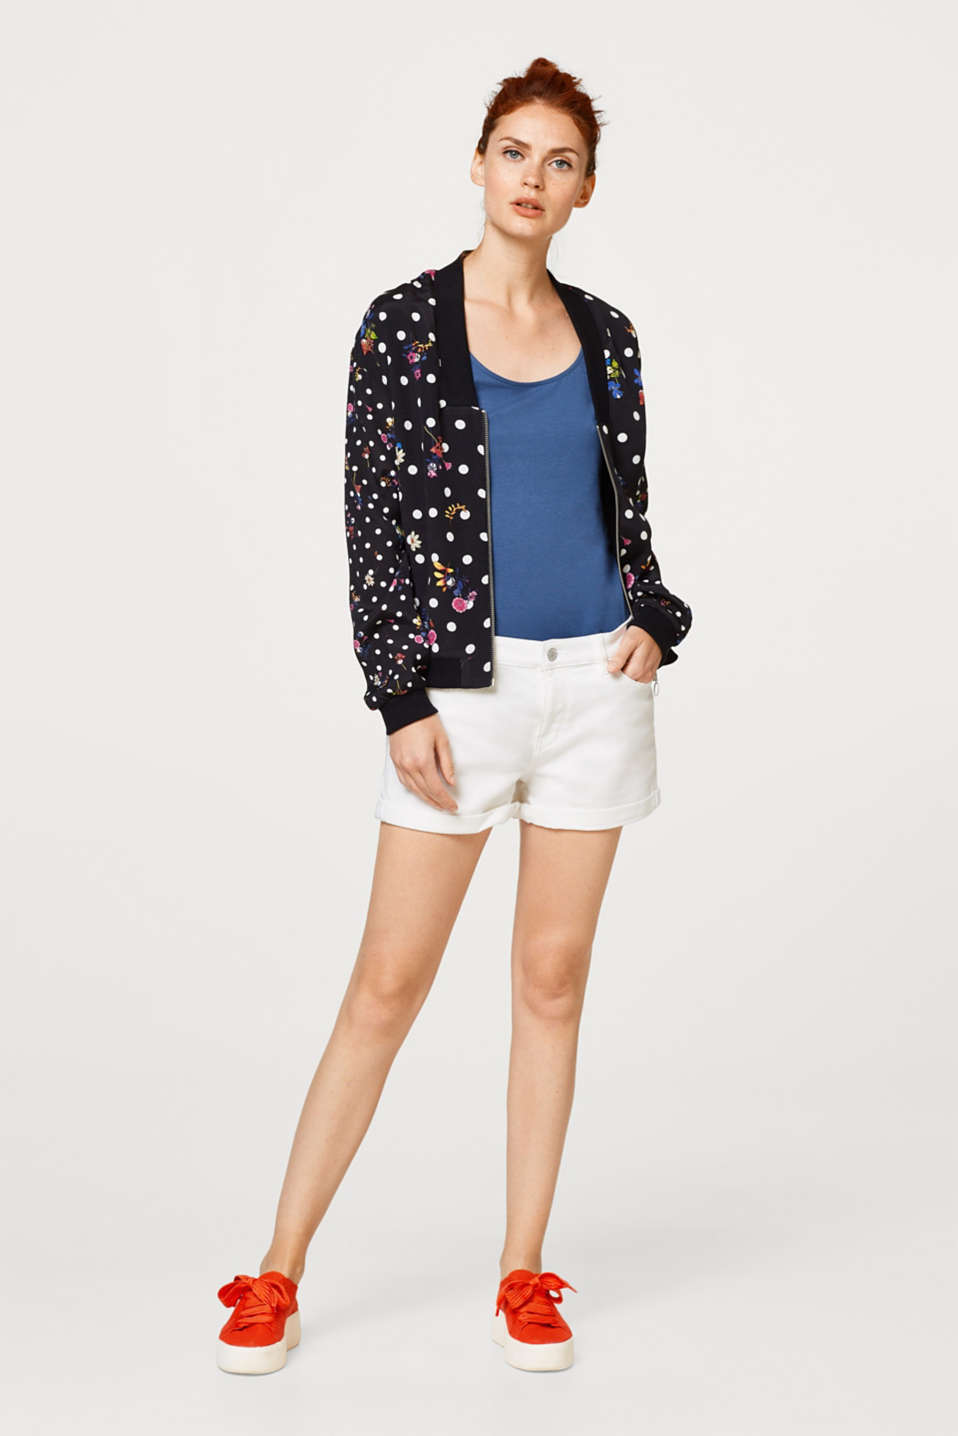 Bomber-Jacke im trendy Muster-Mix-Look